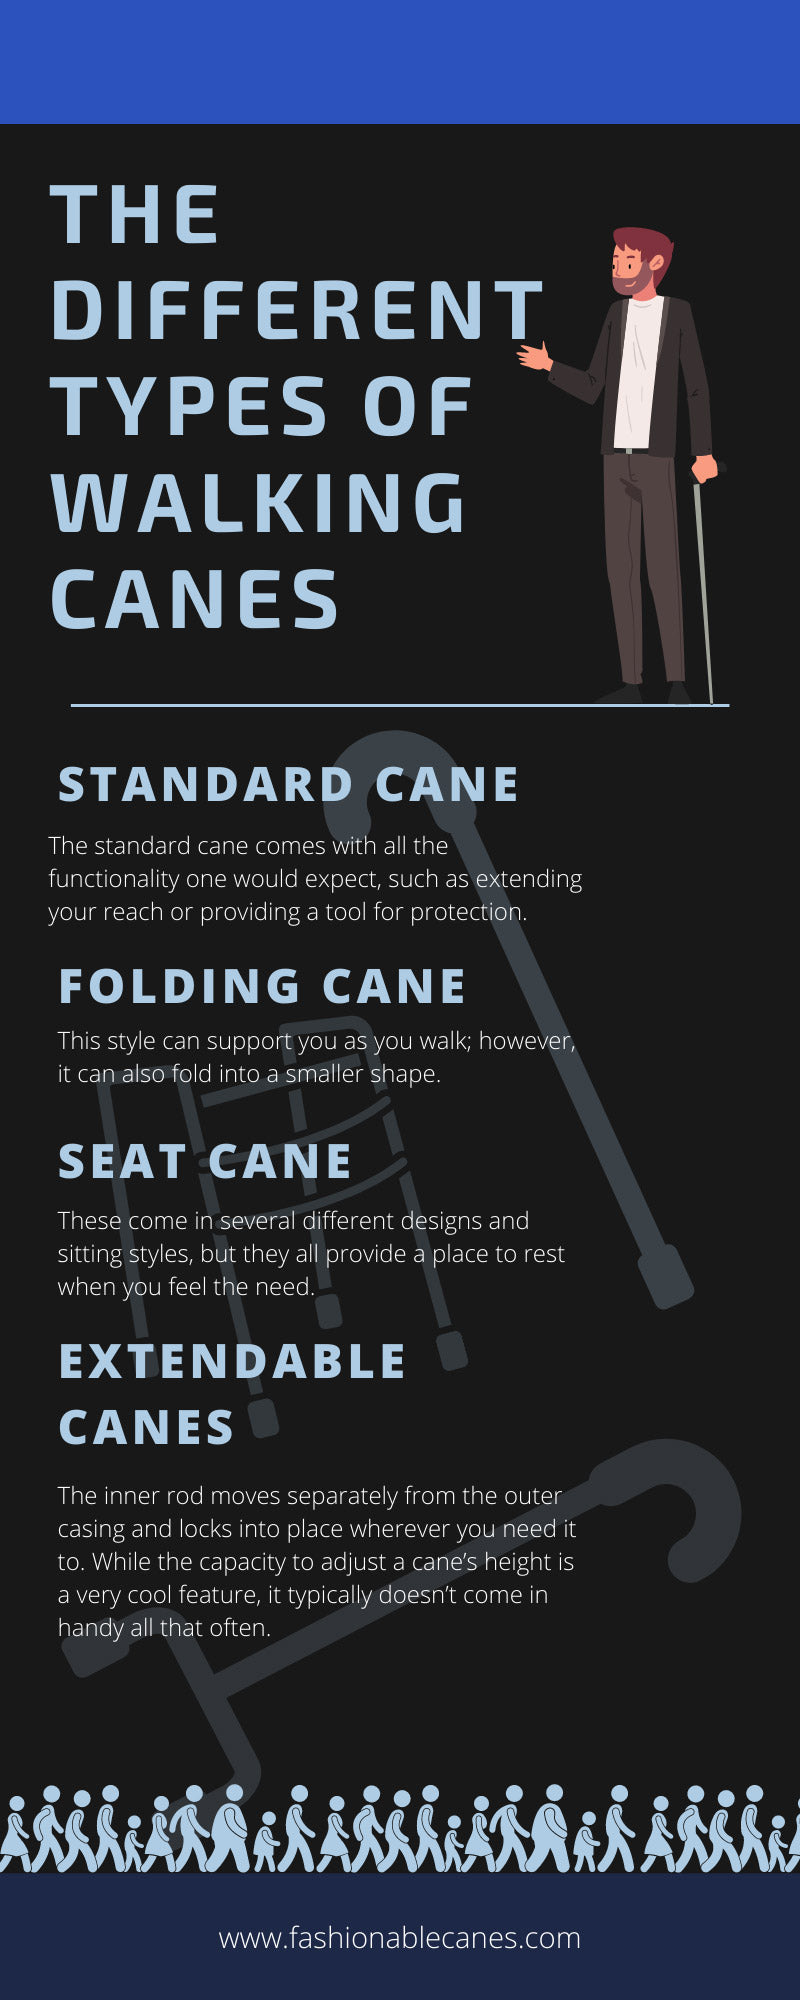 The Different Types of Walking Canes